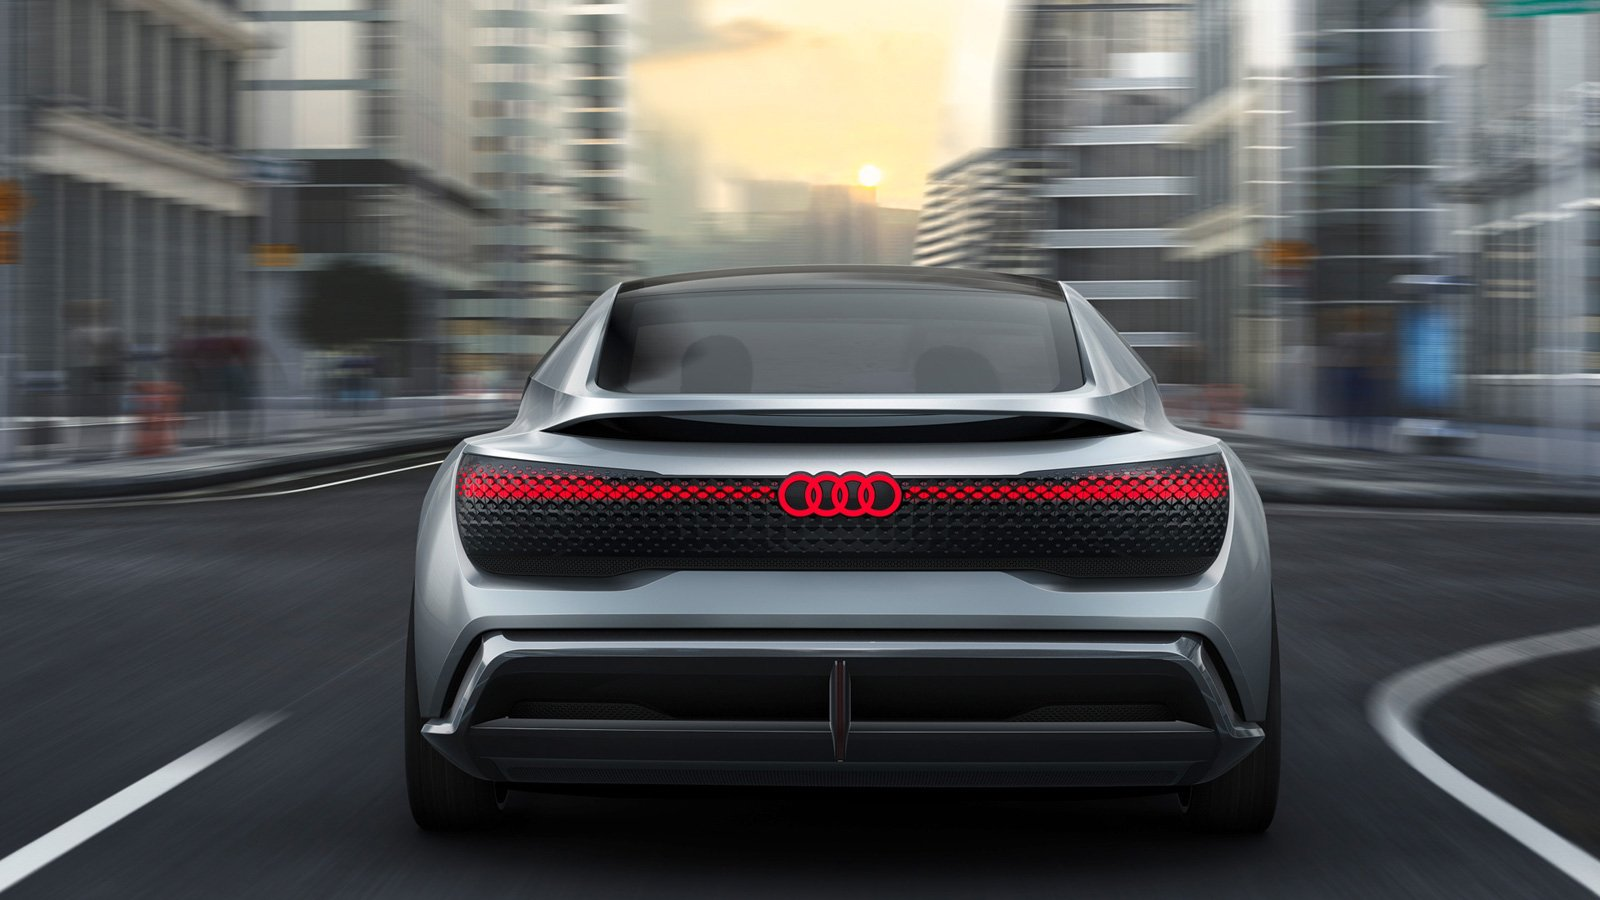 Audi and Volkswagen customer data is sold in a hacking forum